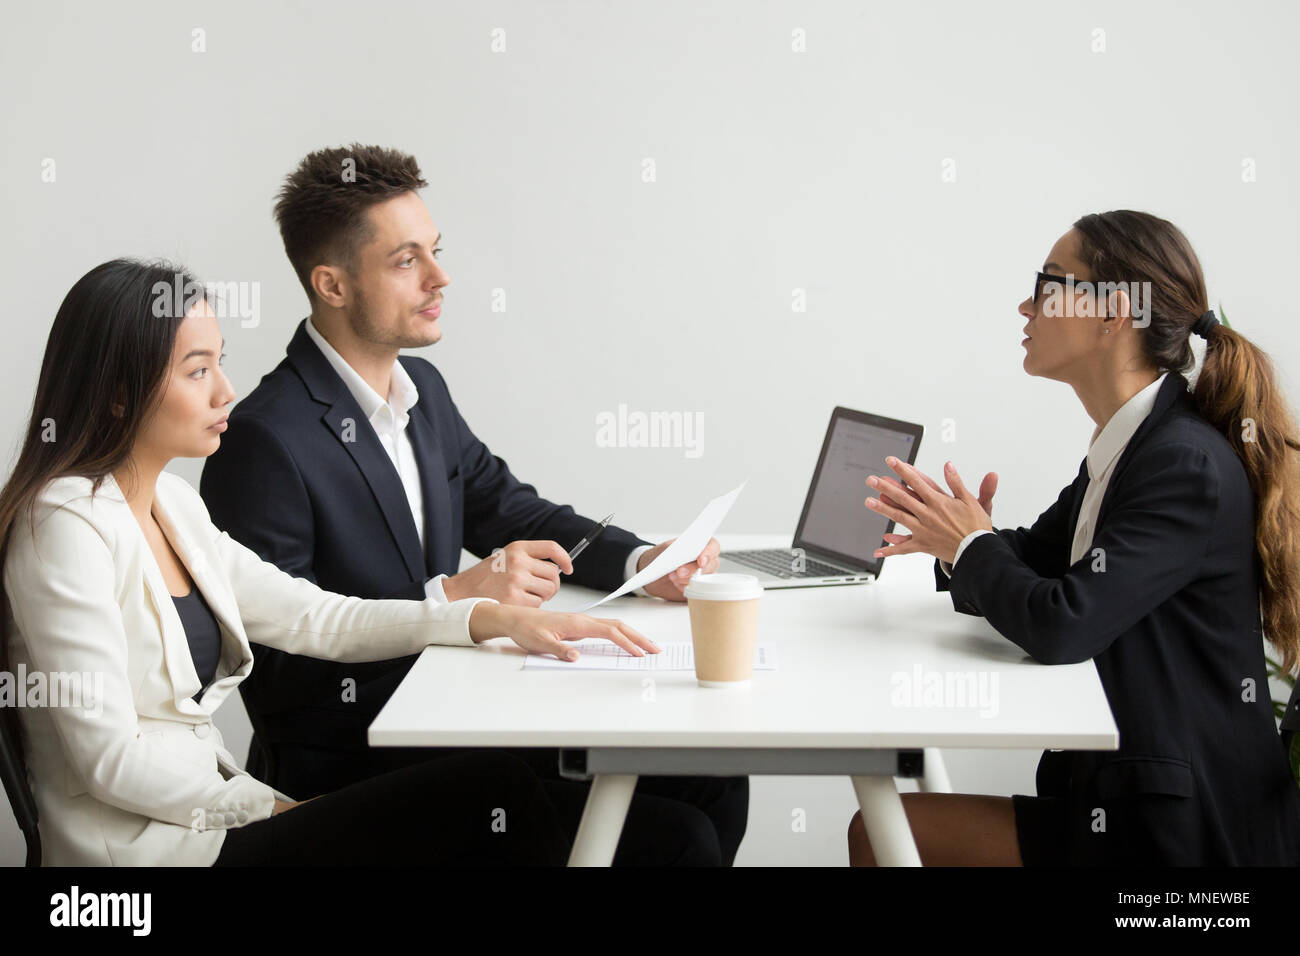 Female applicant interviewed by HR mangers - Stock Image